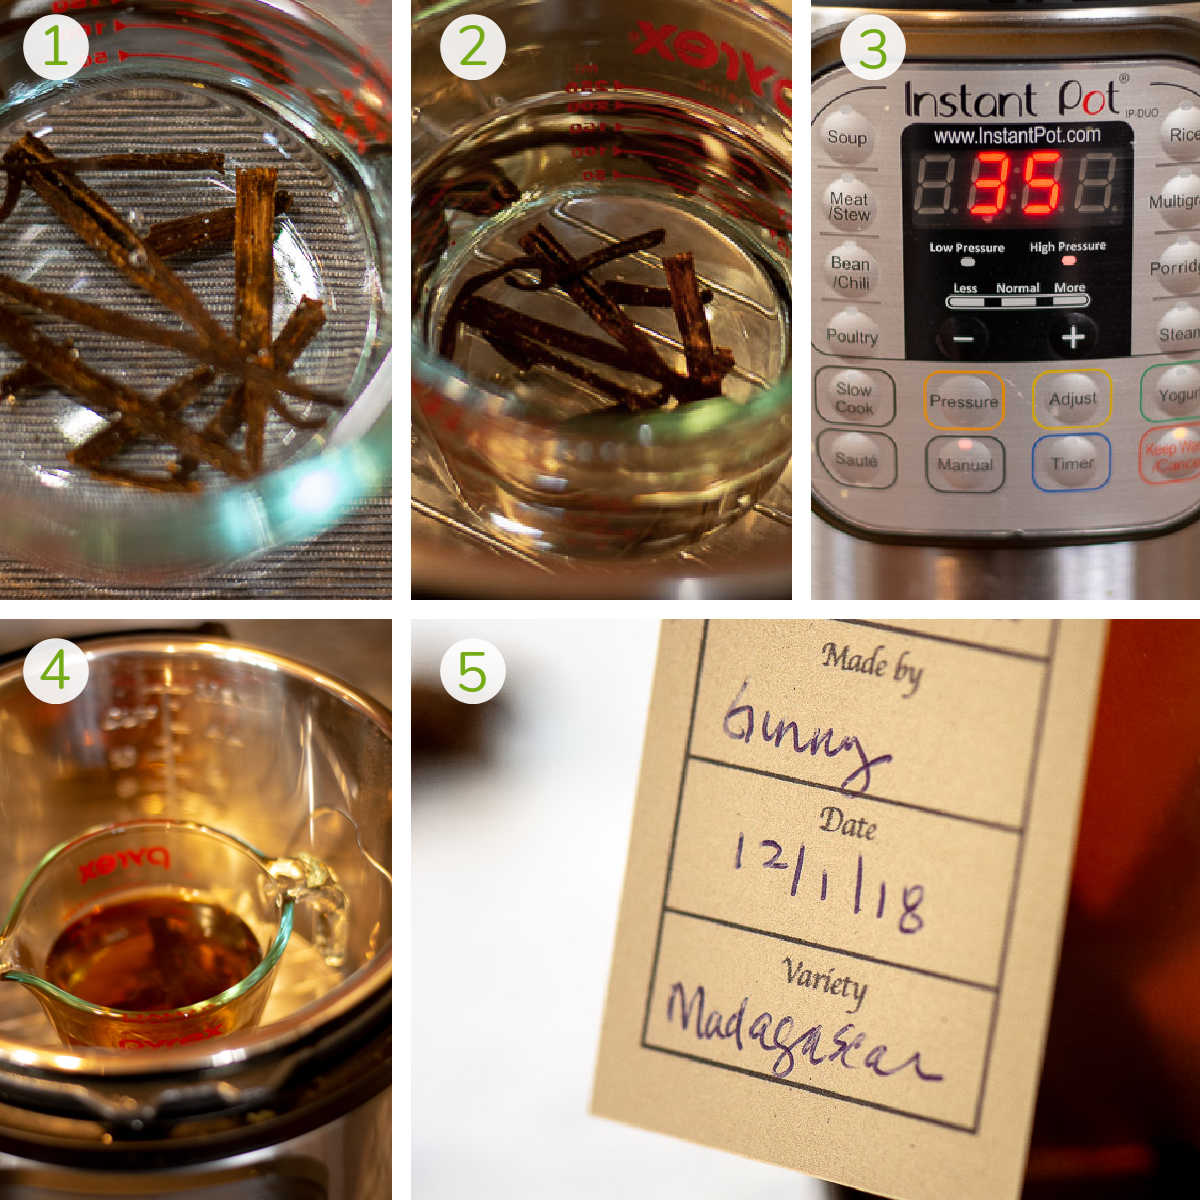 process photos showing adding vodka and vanilla beans to a measuring cup, adding it to the instant pot, and the end result with a cute label.